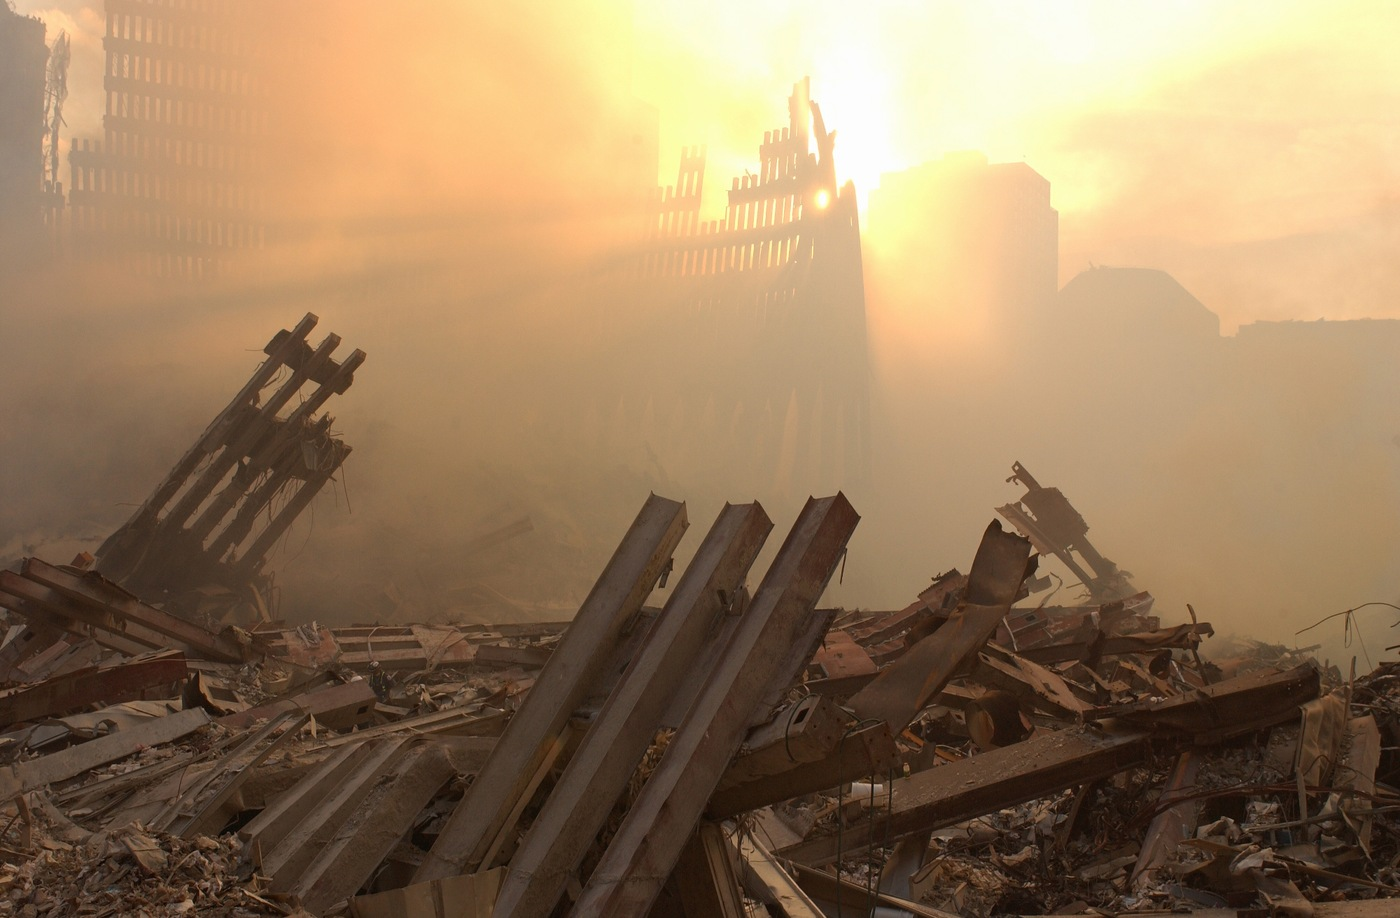 Sun and haze at Ground Zero site in New York after 9/11 attacks.